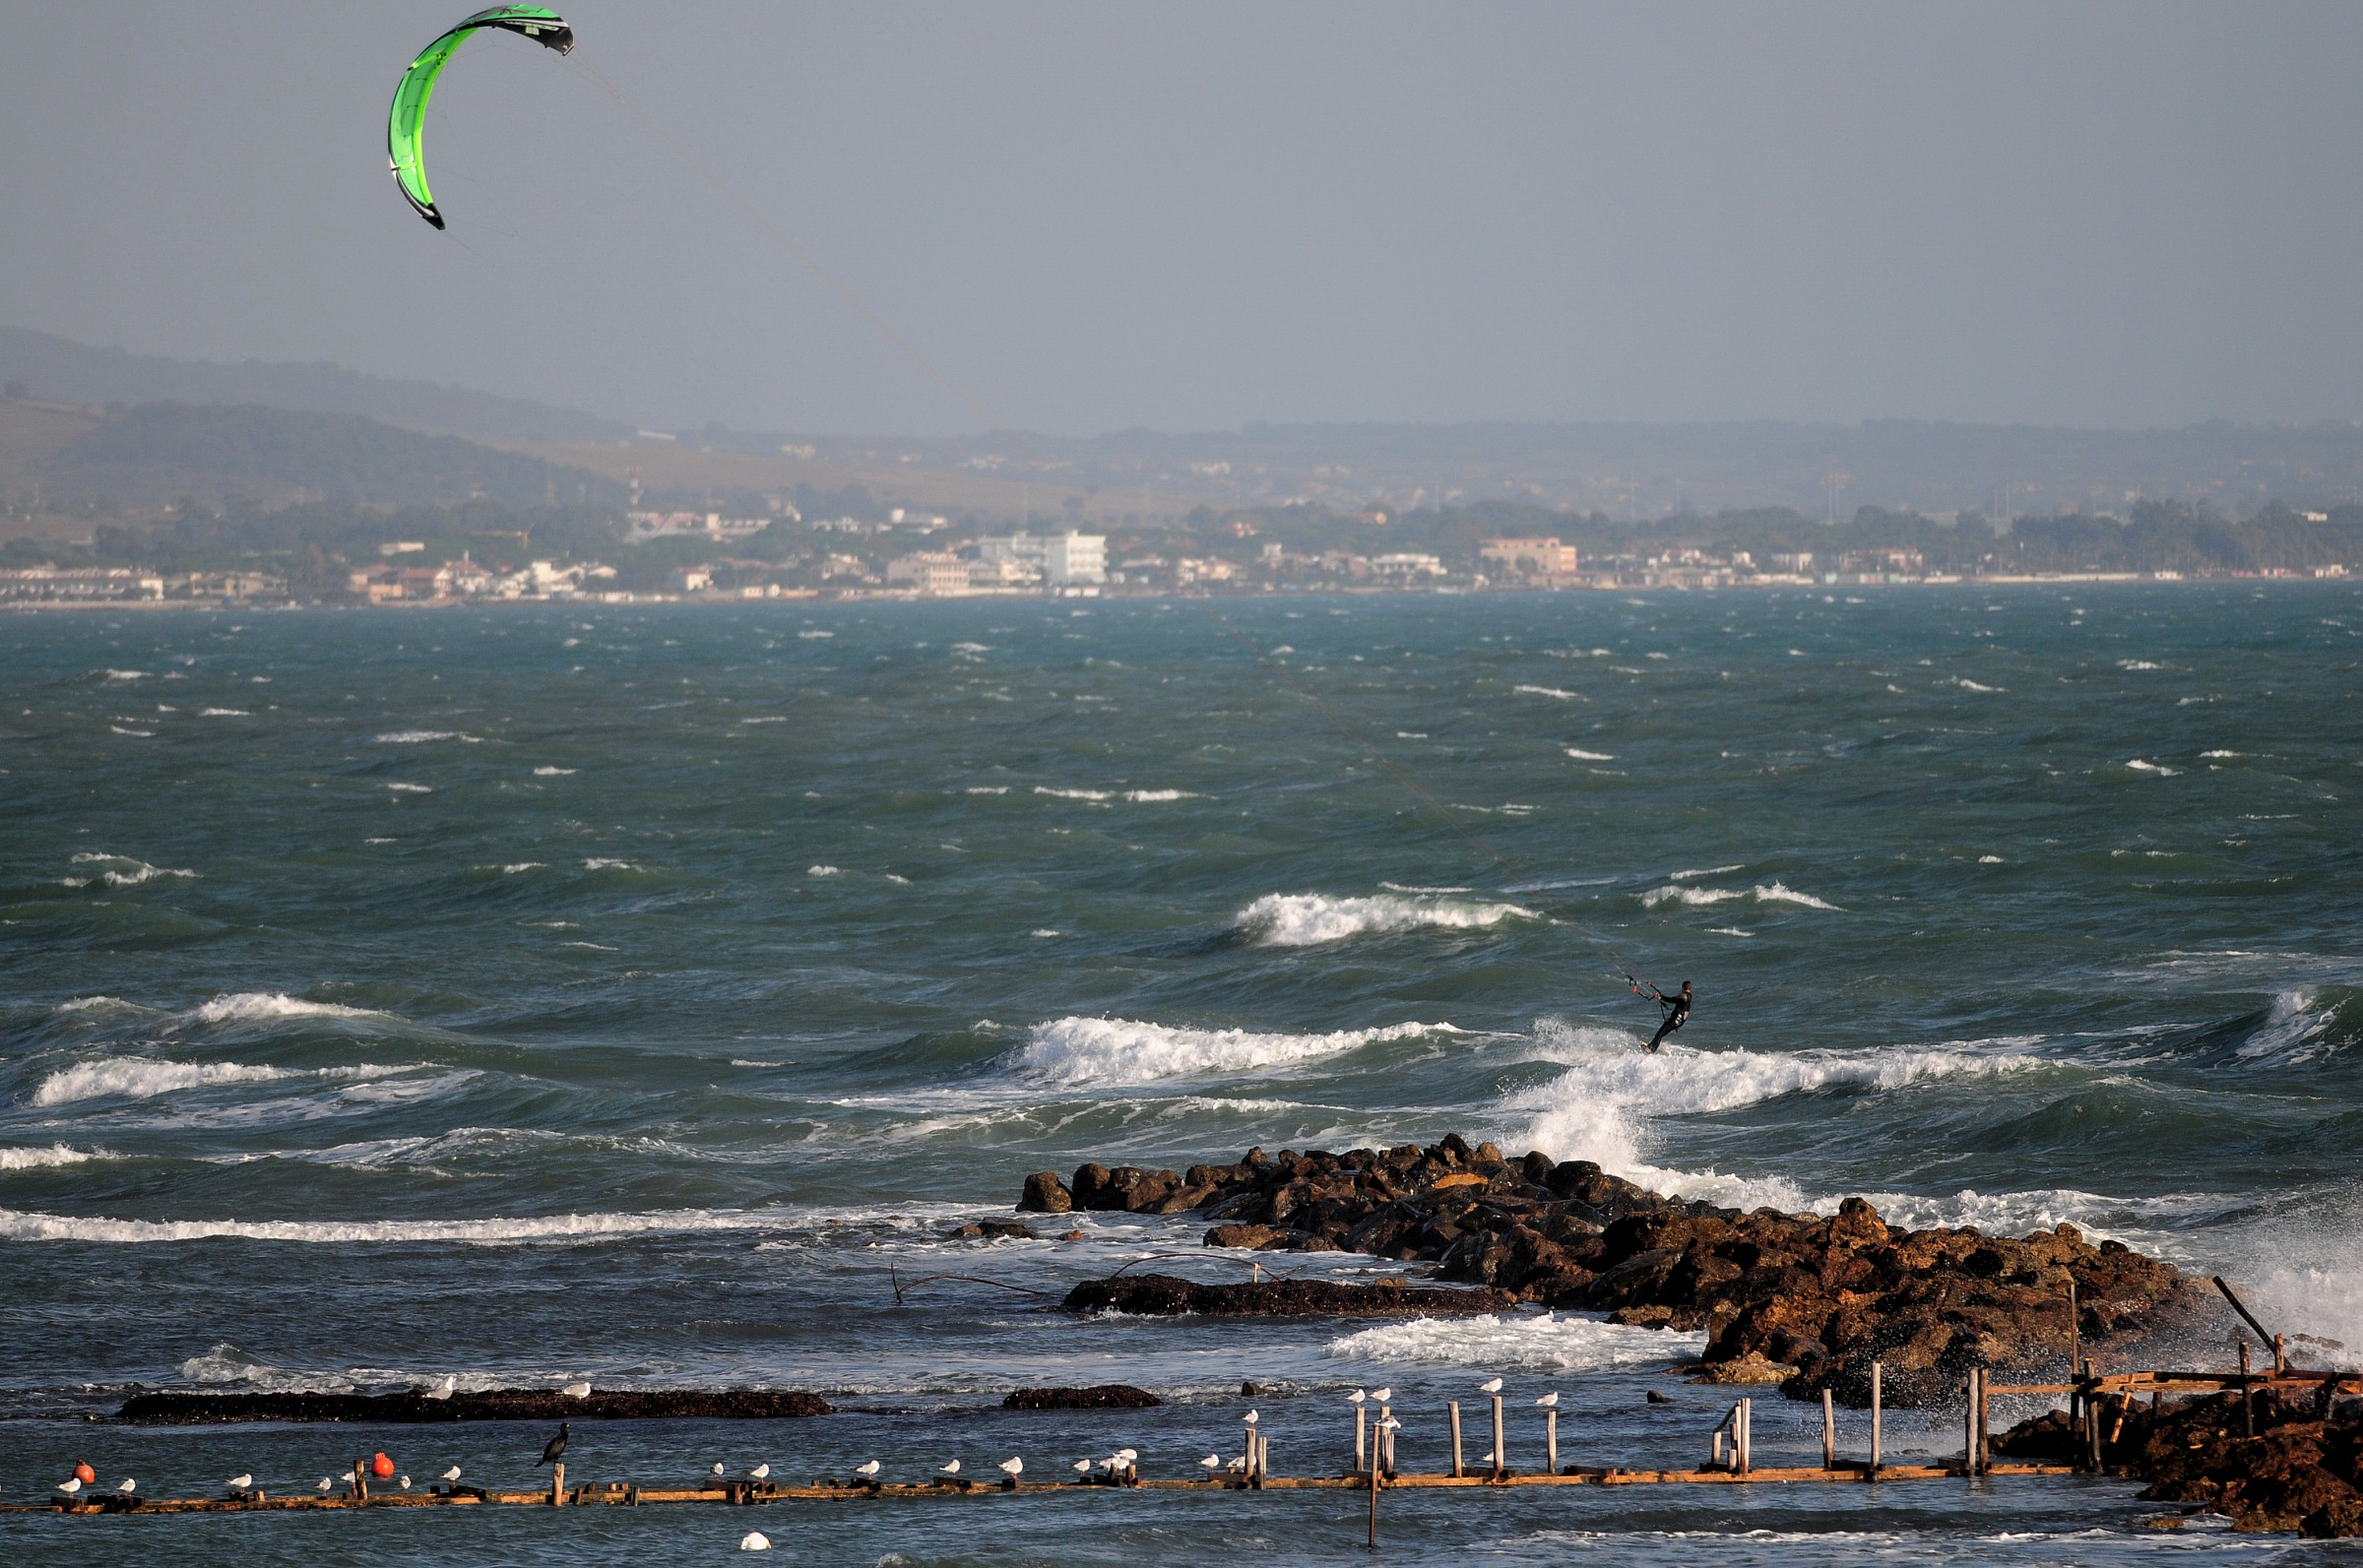 S.Marinella - Kite Surf...